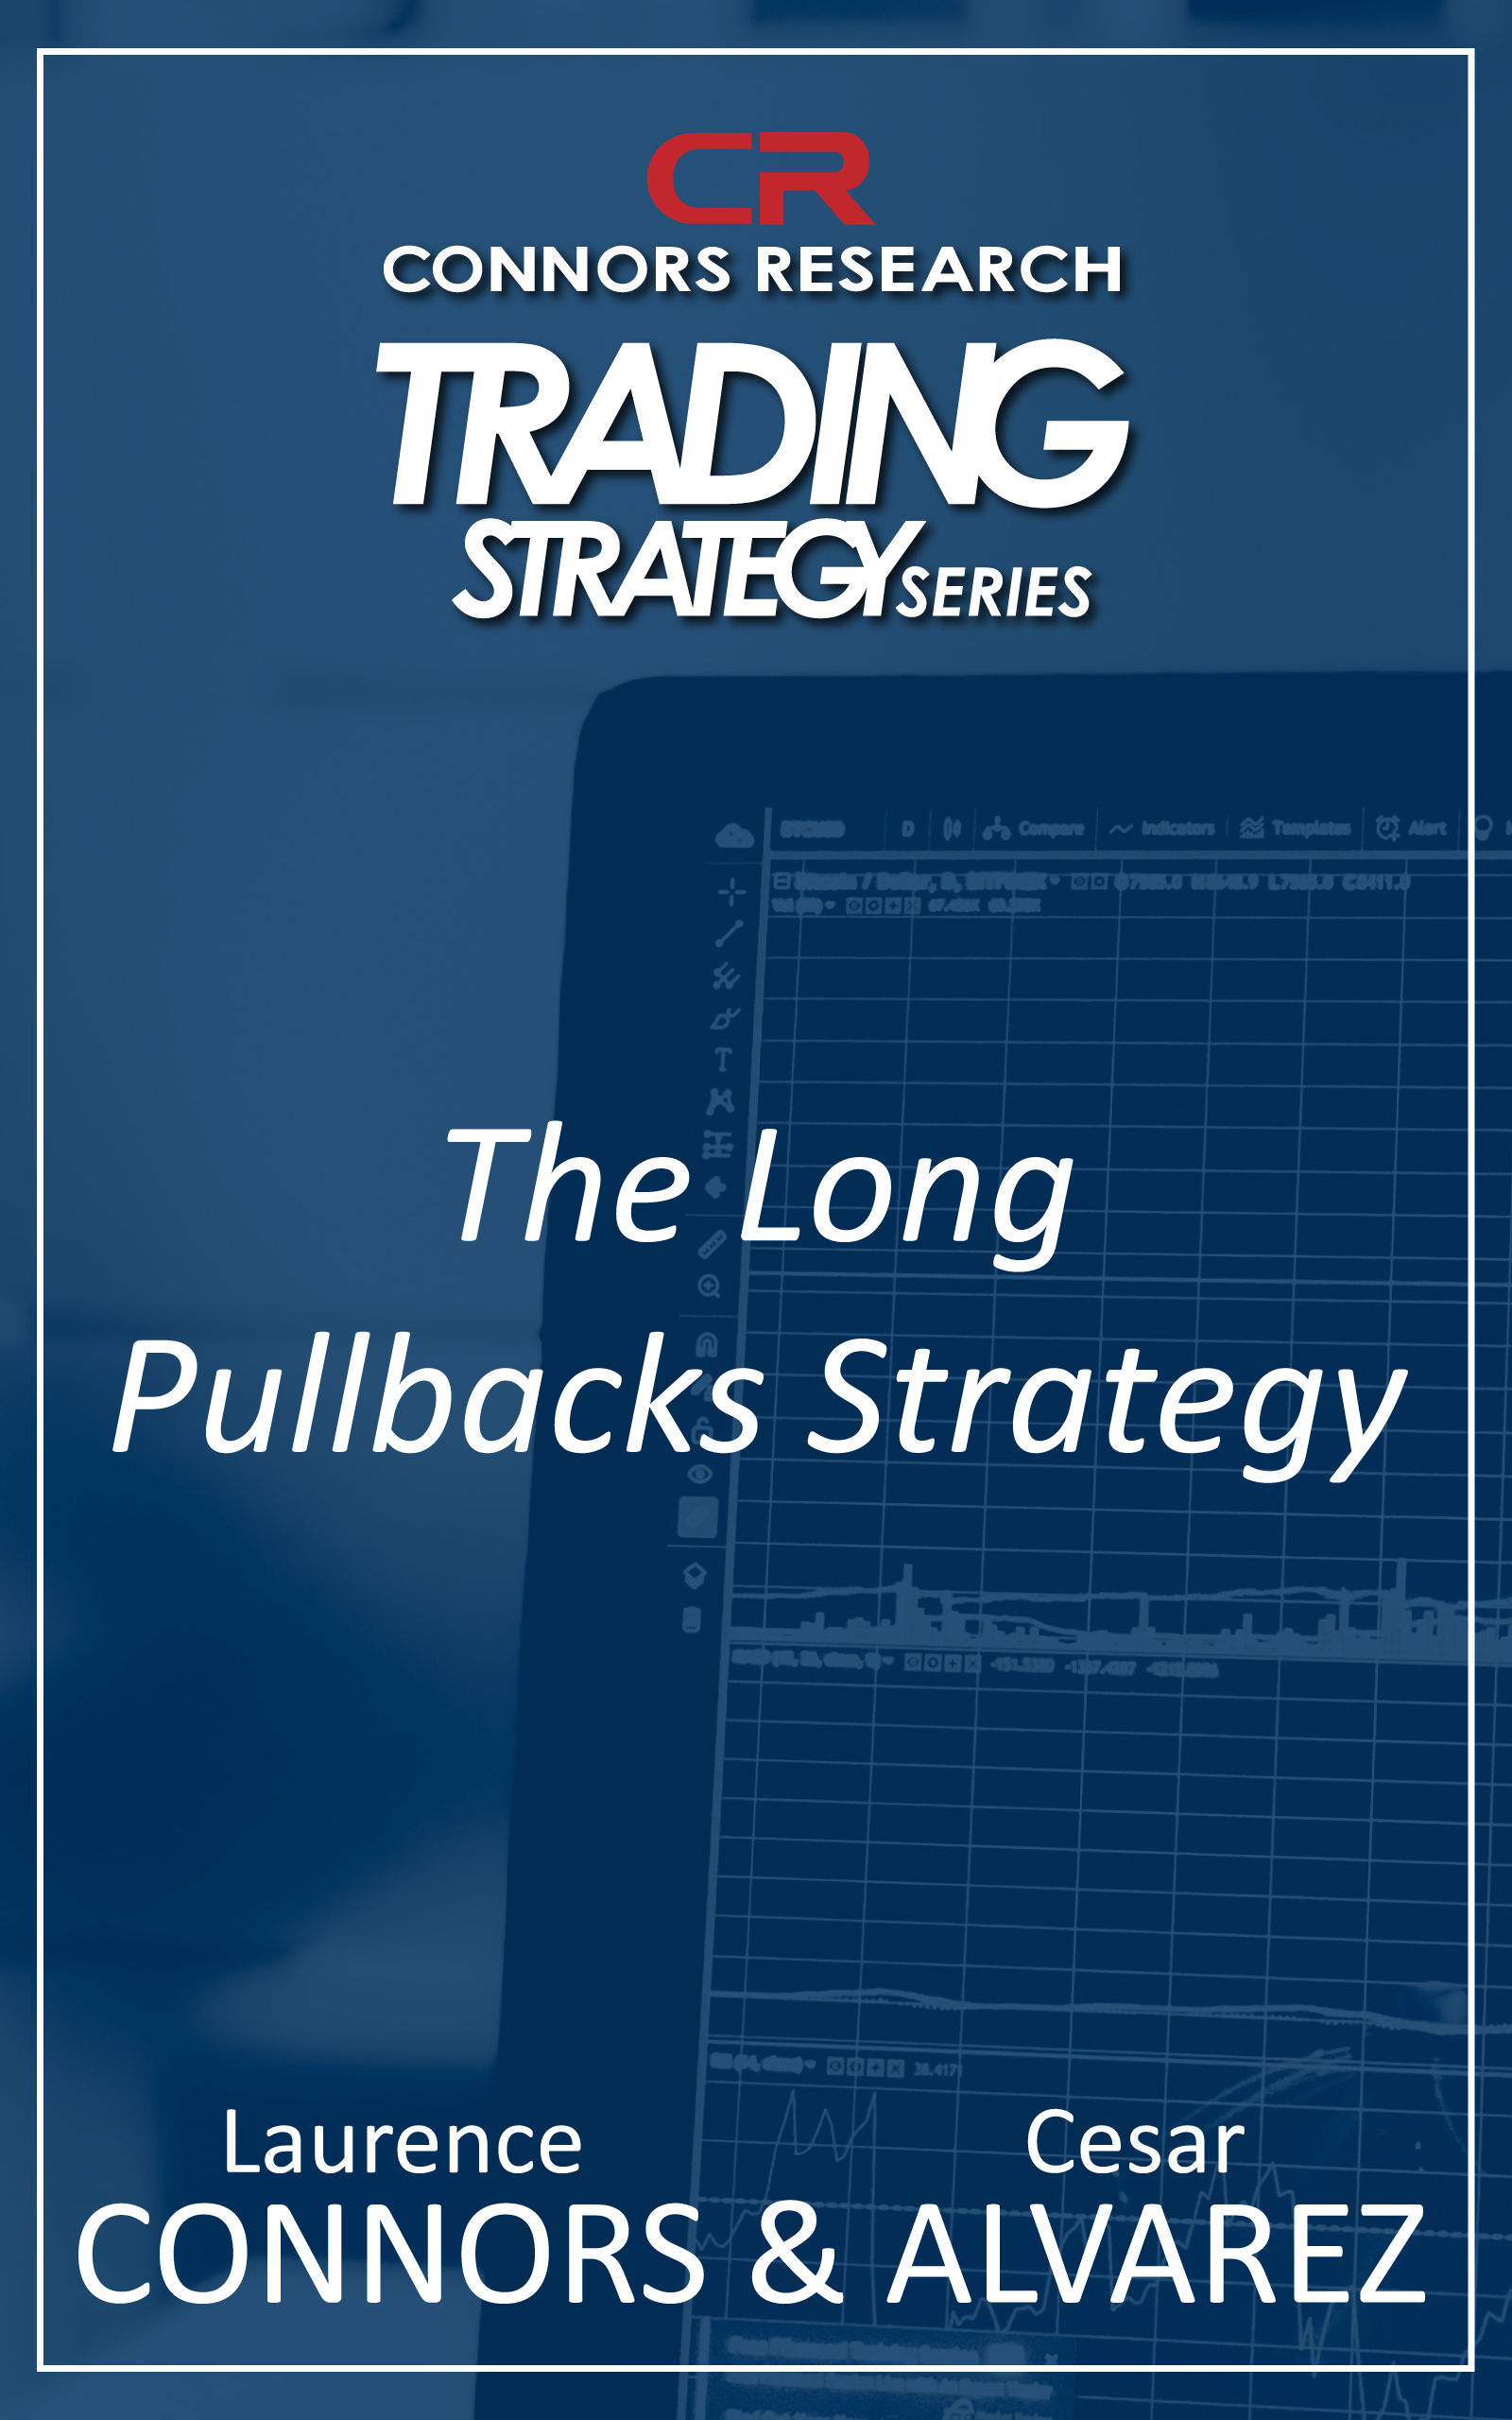 Connors Research Trading Strategy Series: The Long Pullbacks Strategy BOO-CRLPULL-D